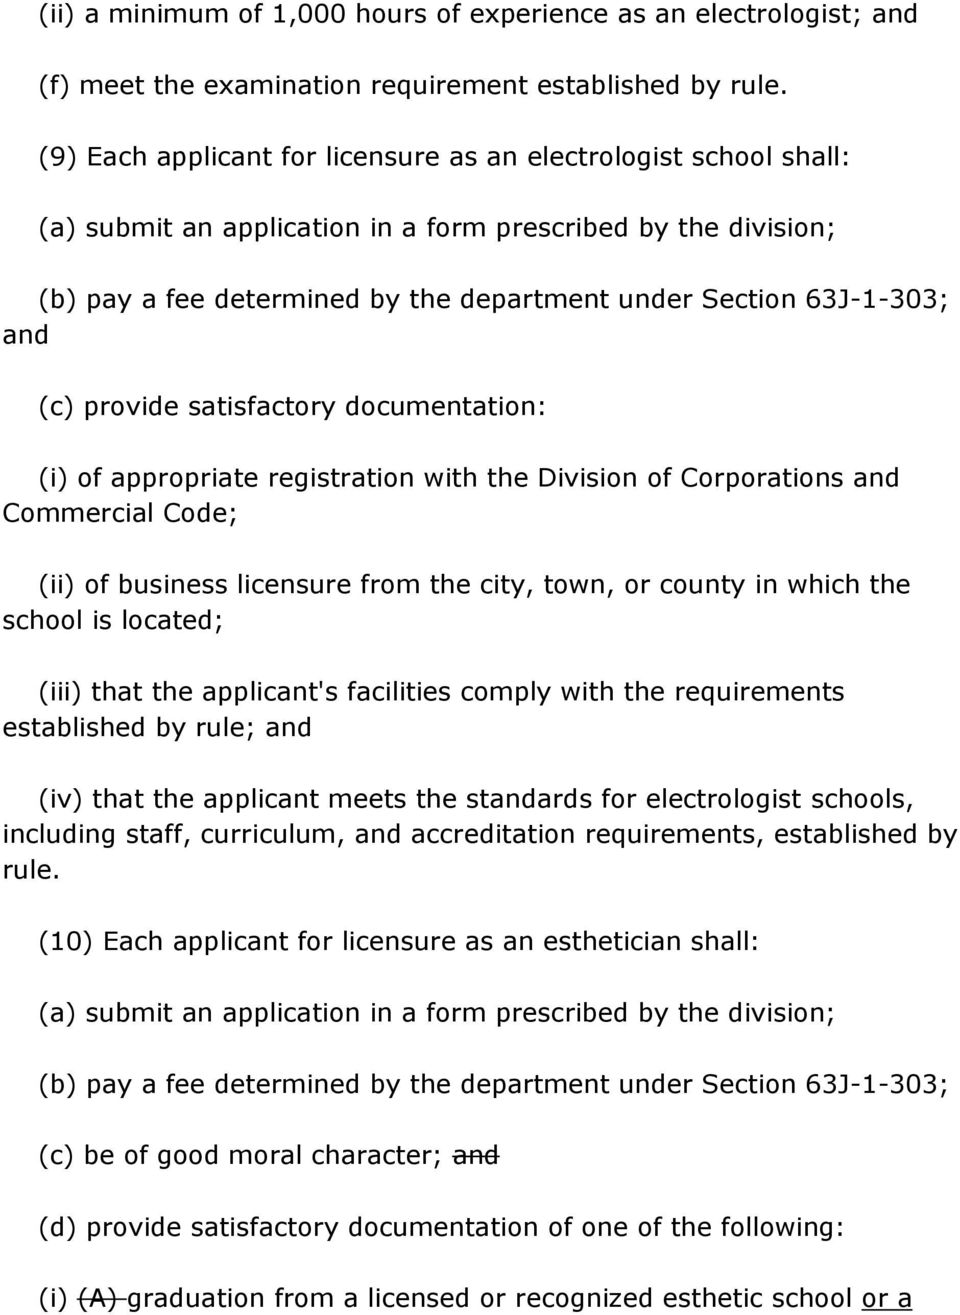 (ii) of business licensure from the city, town, or county in which the school is located; (iii) that the applicant's facilities comply with the requirements established by rule; and (iv) that the